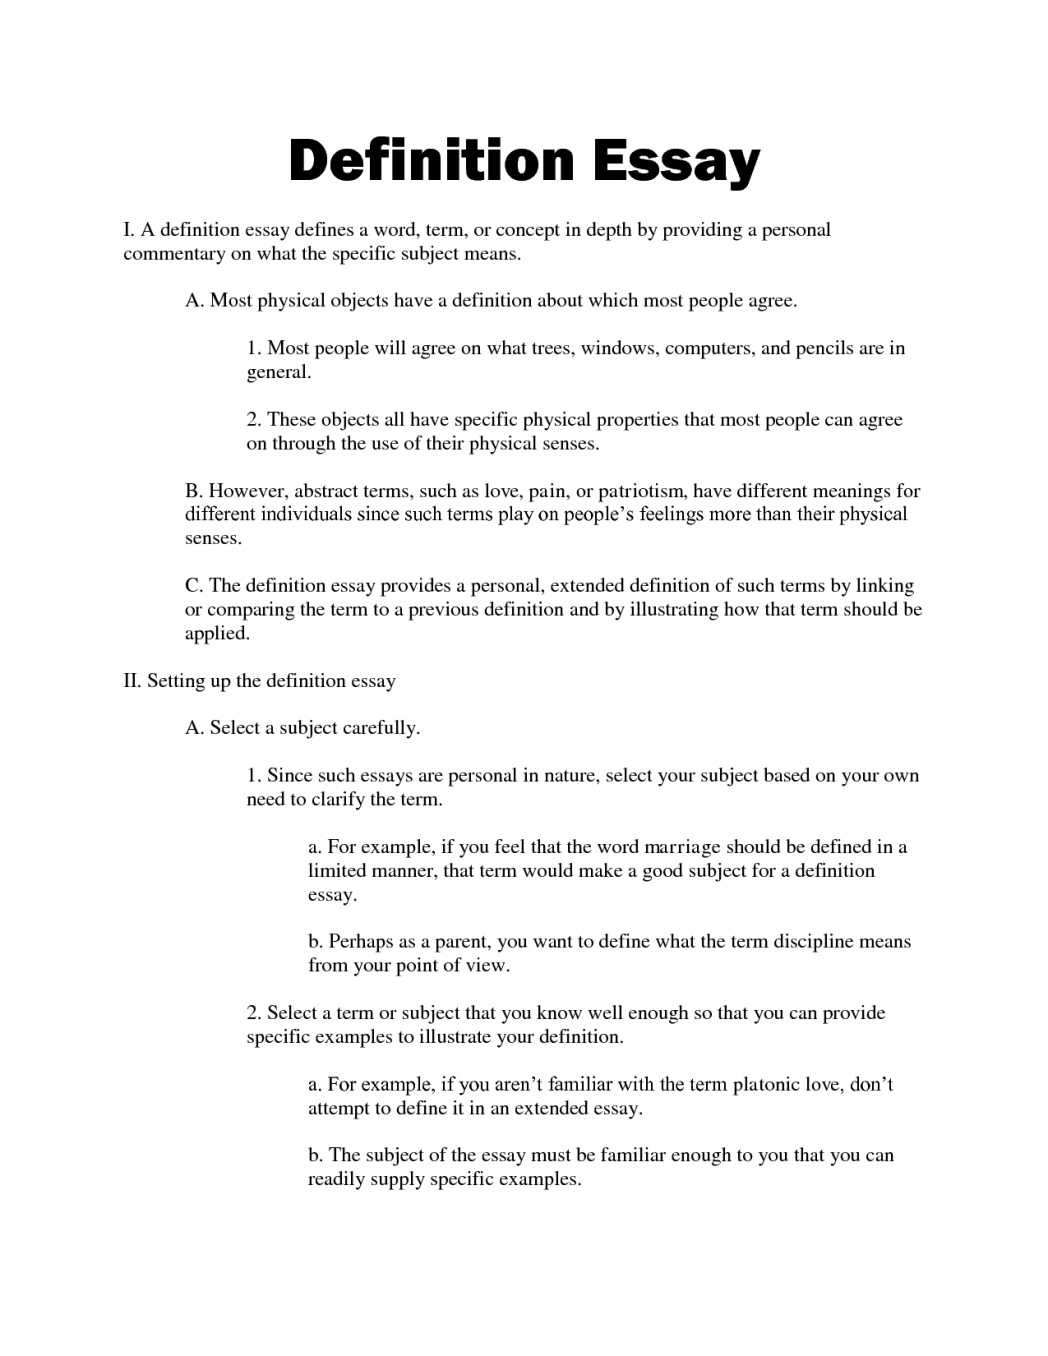 002 Topics For Definition Argument Essay List 1048x1356 Impressive Assignment Ideas Outline Full